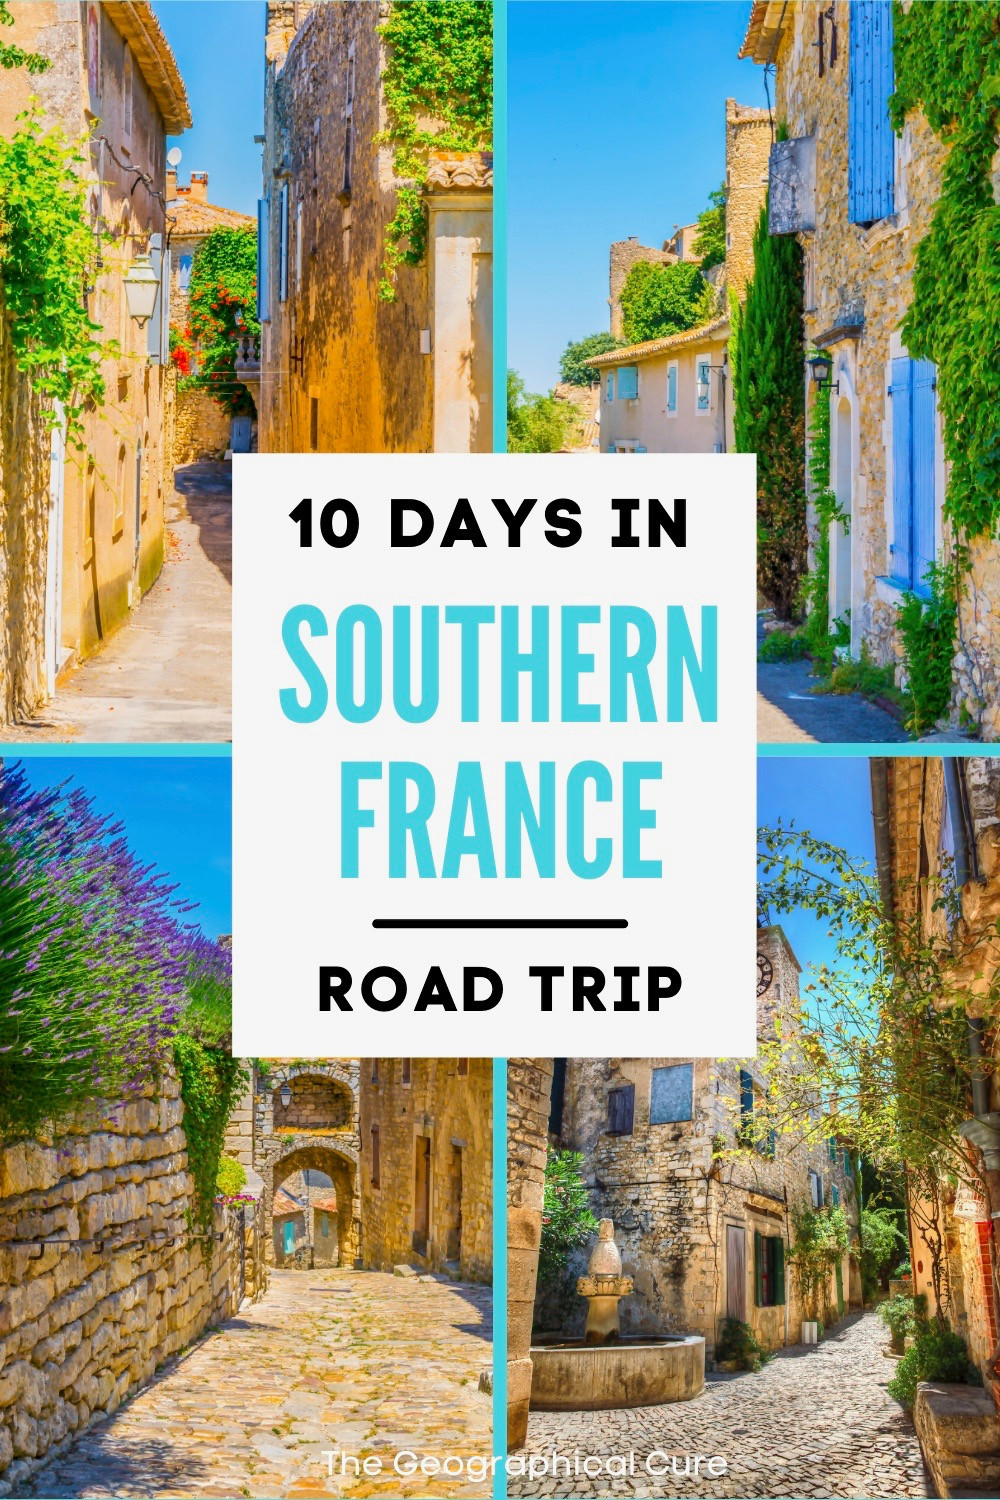 10 Day Road Trip Itinerary for Southern France